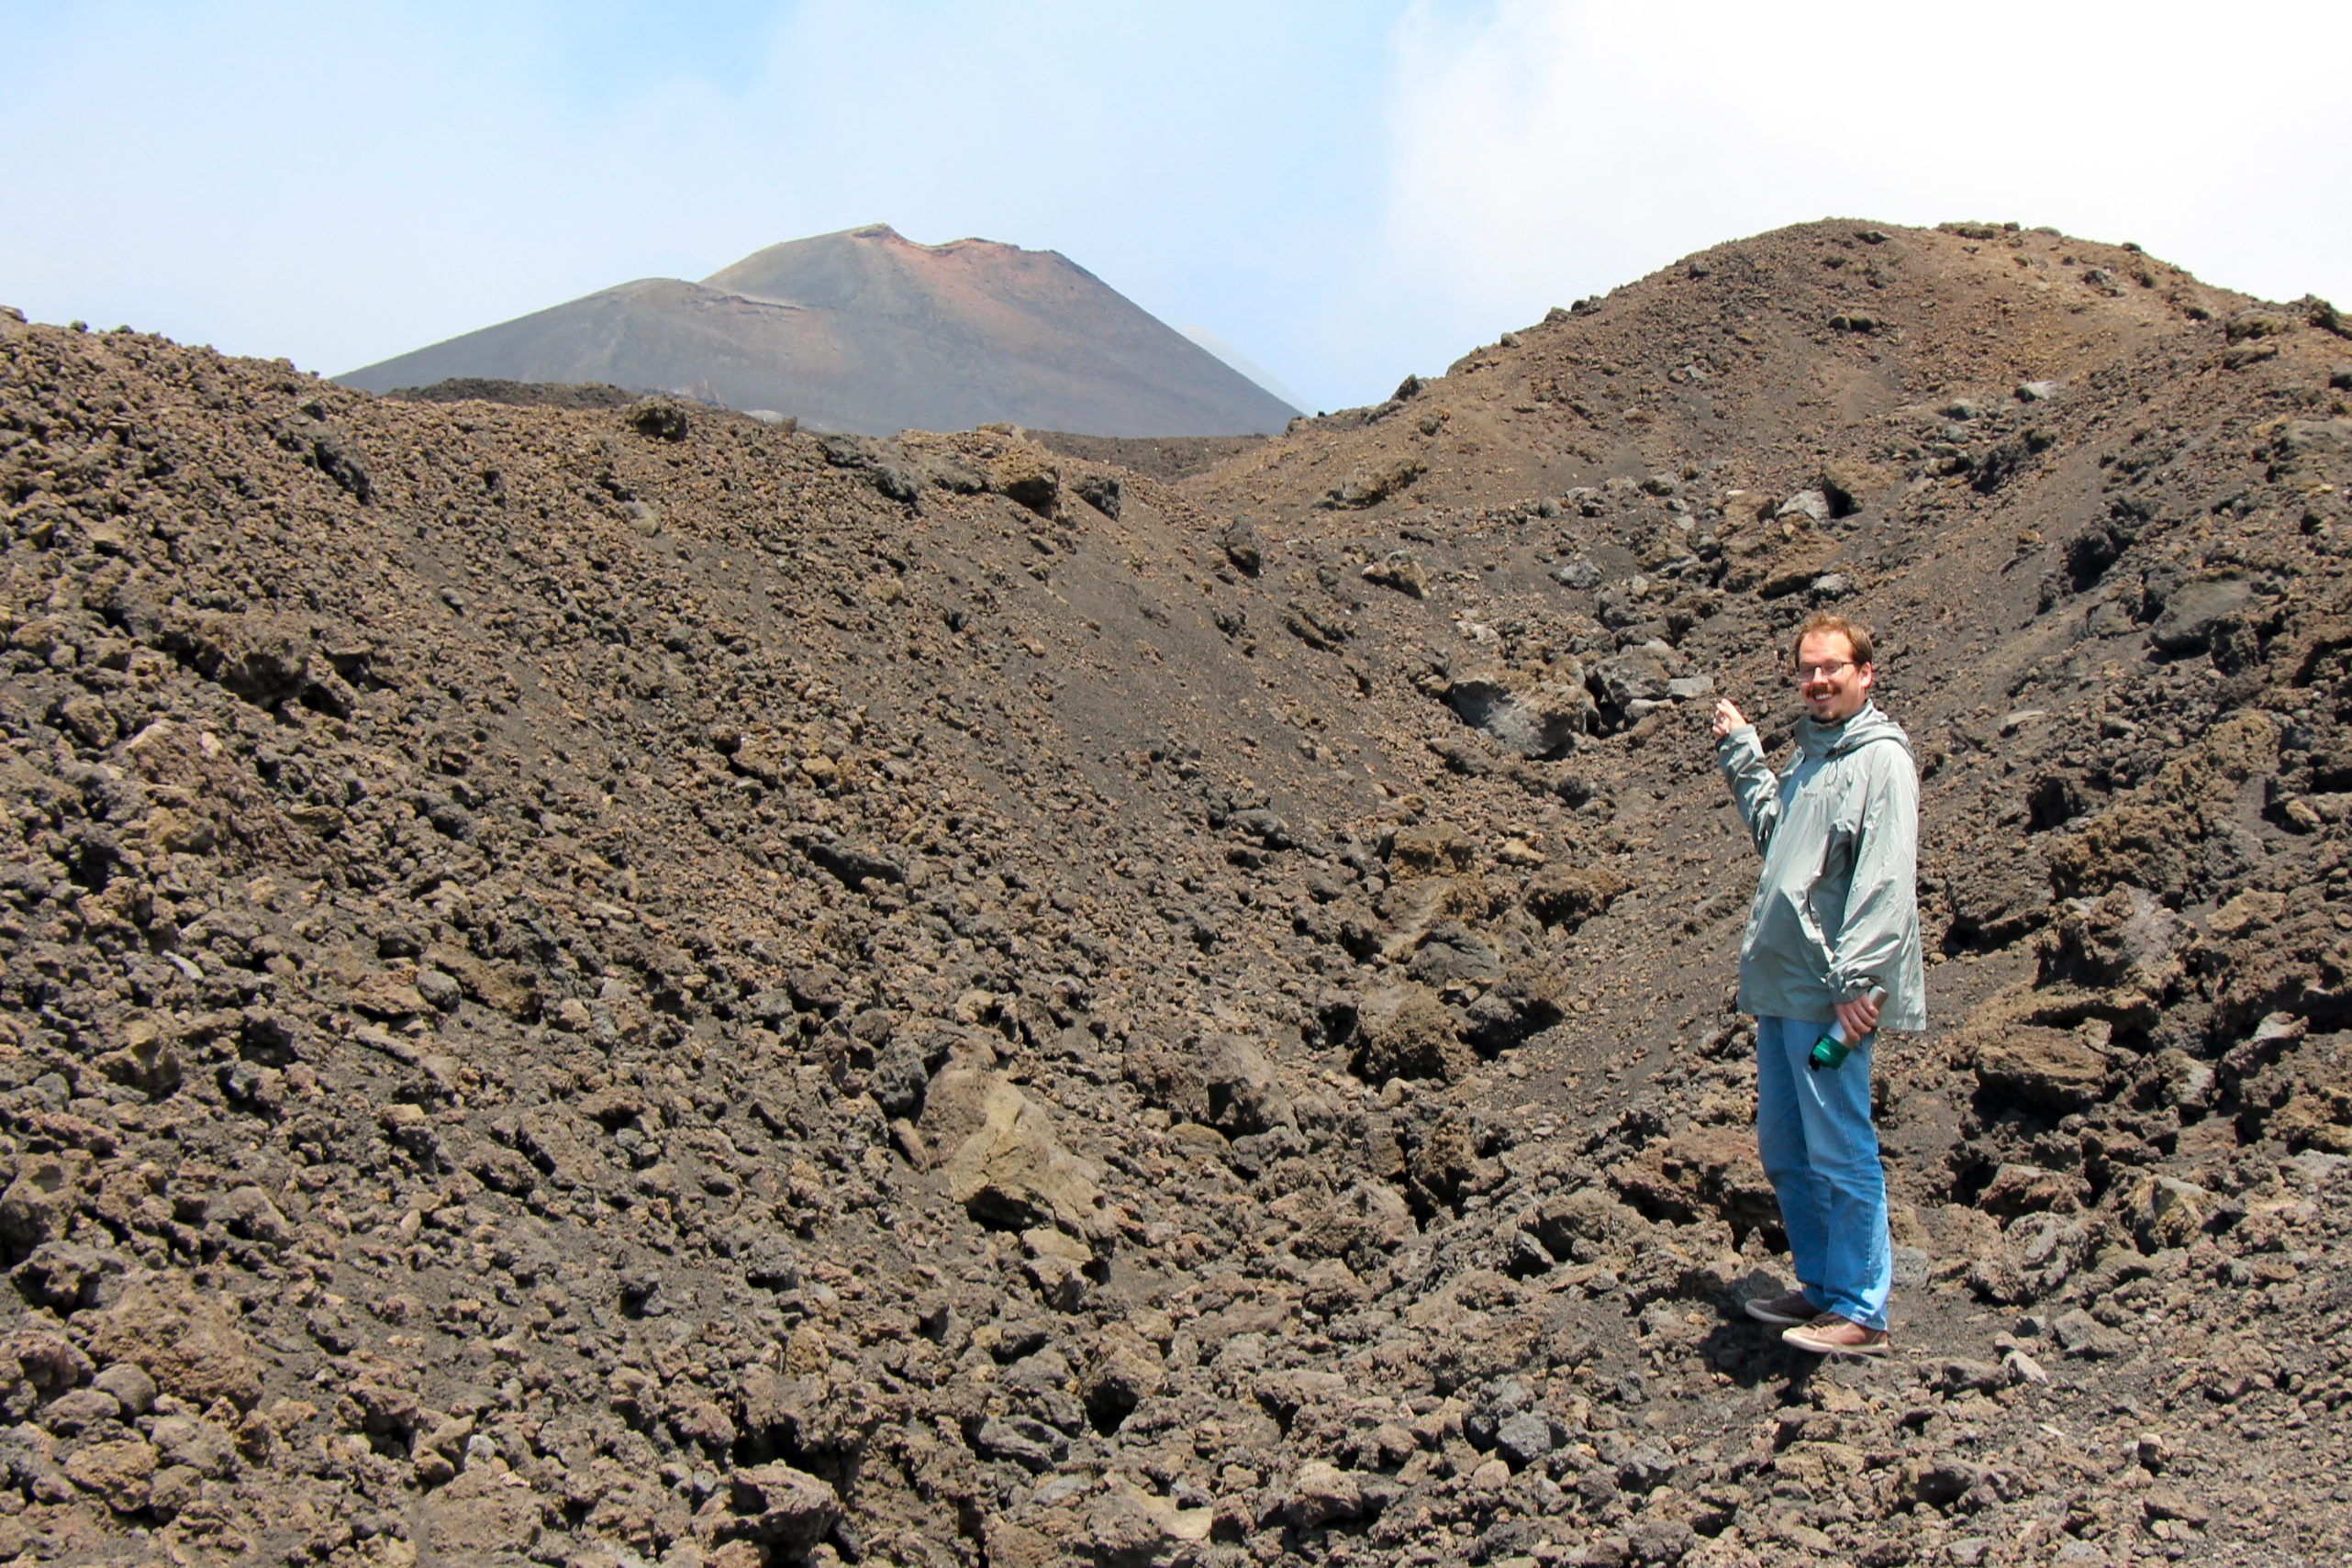 Sam Hiking Mount Etna Sicily